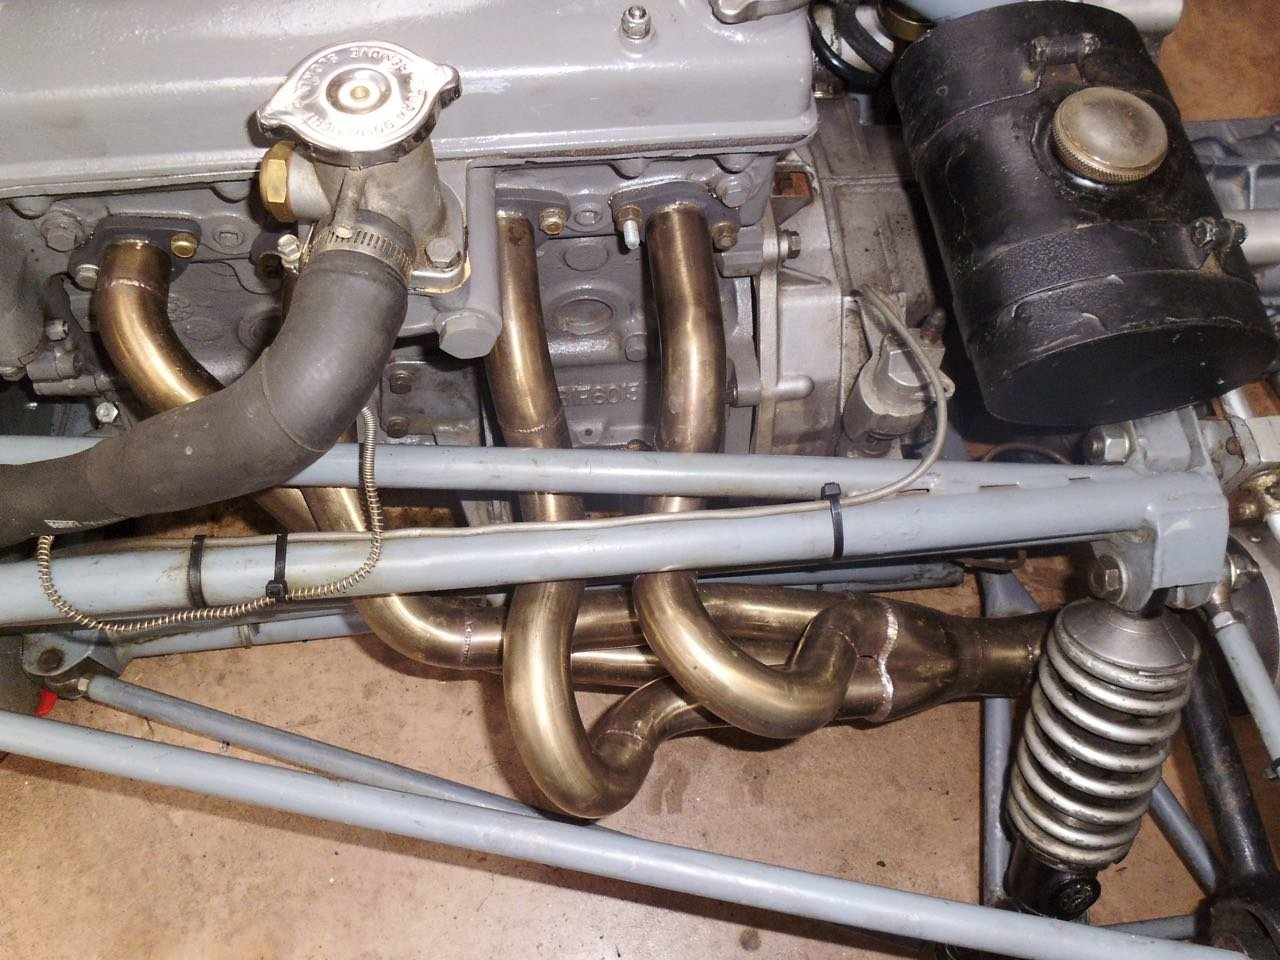 1965 Lotus/Brabham? F2 Car For Sale (picture 6 of 6)